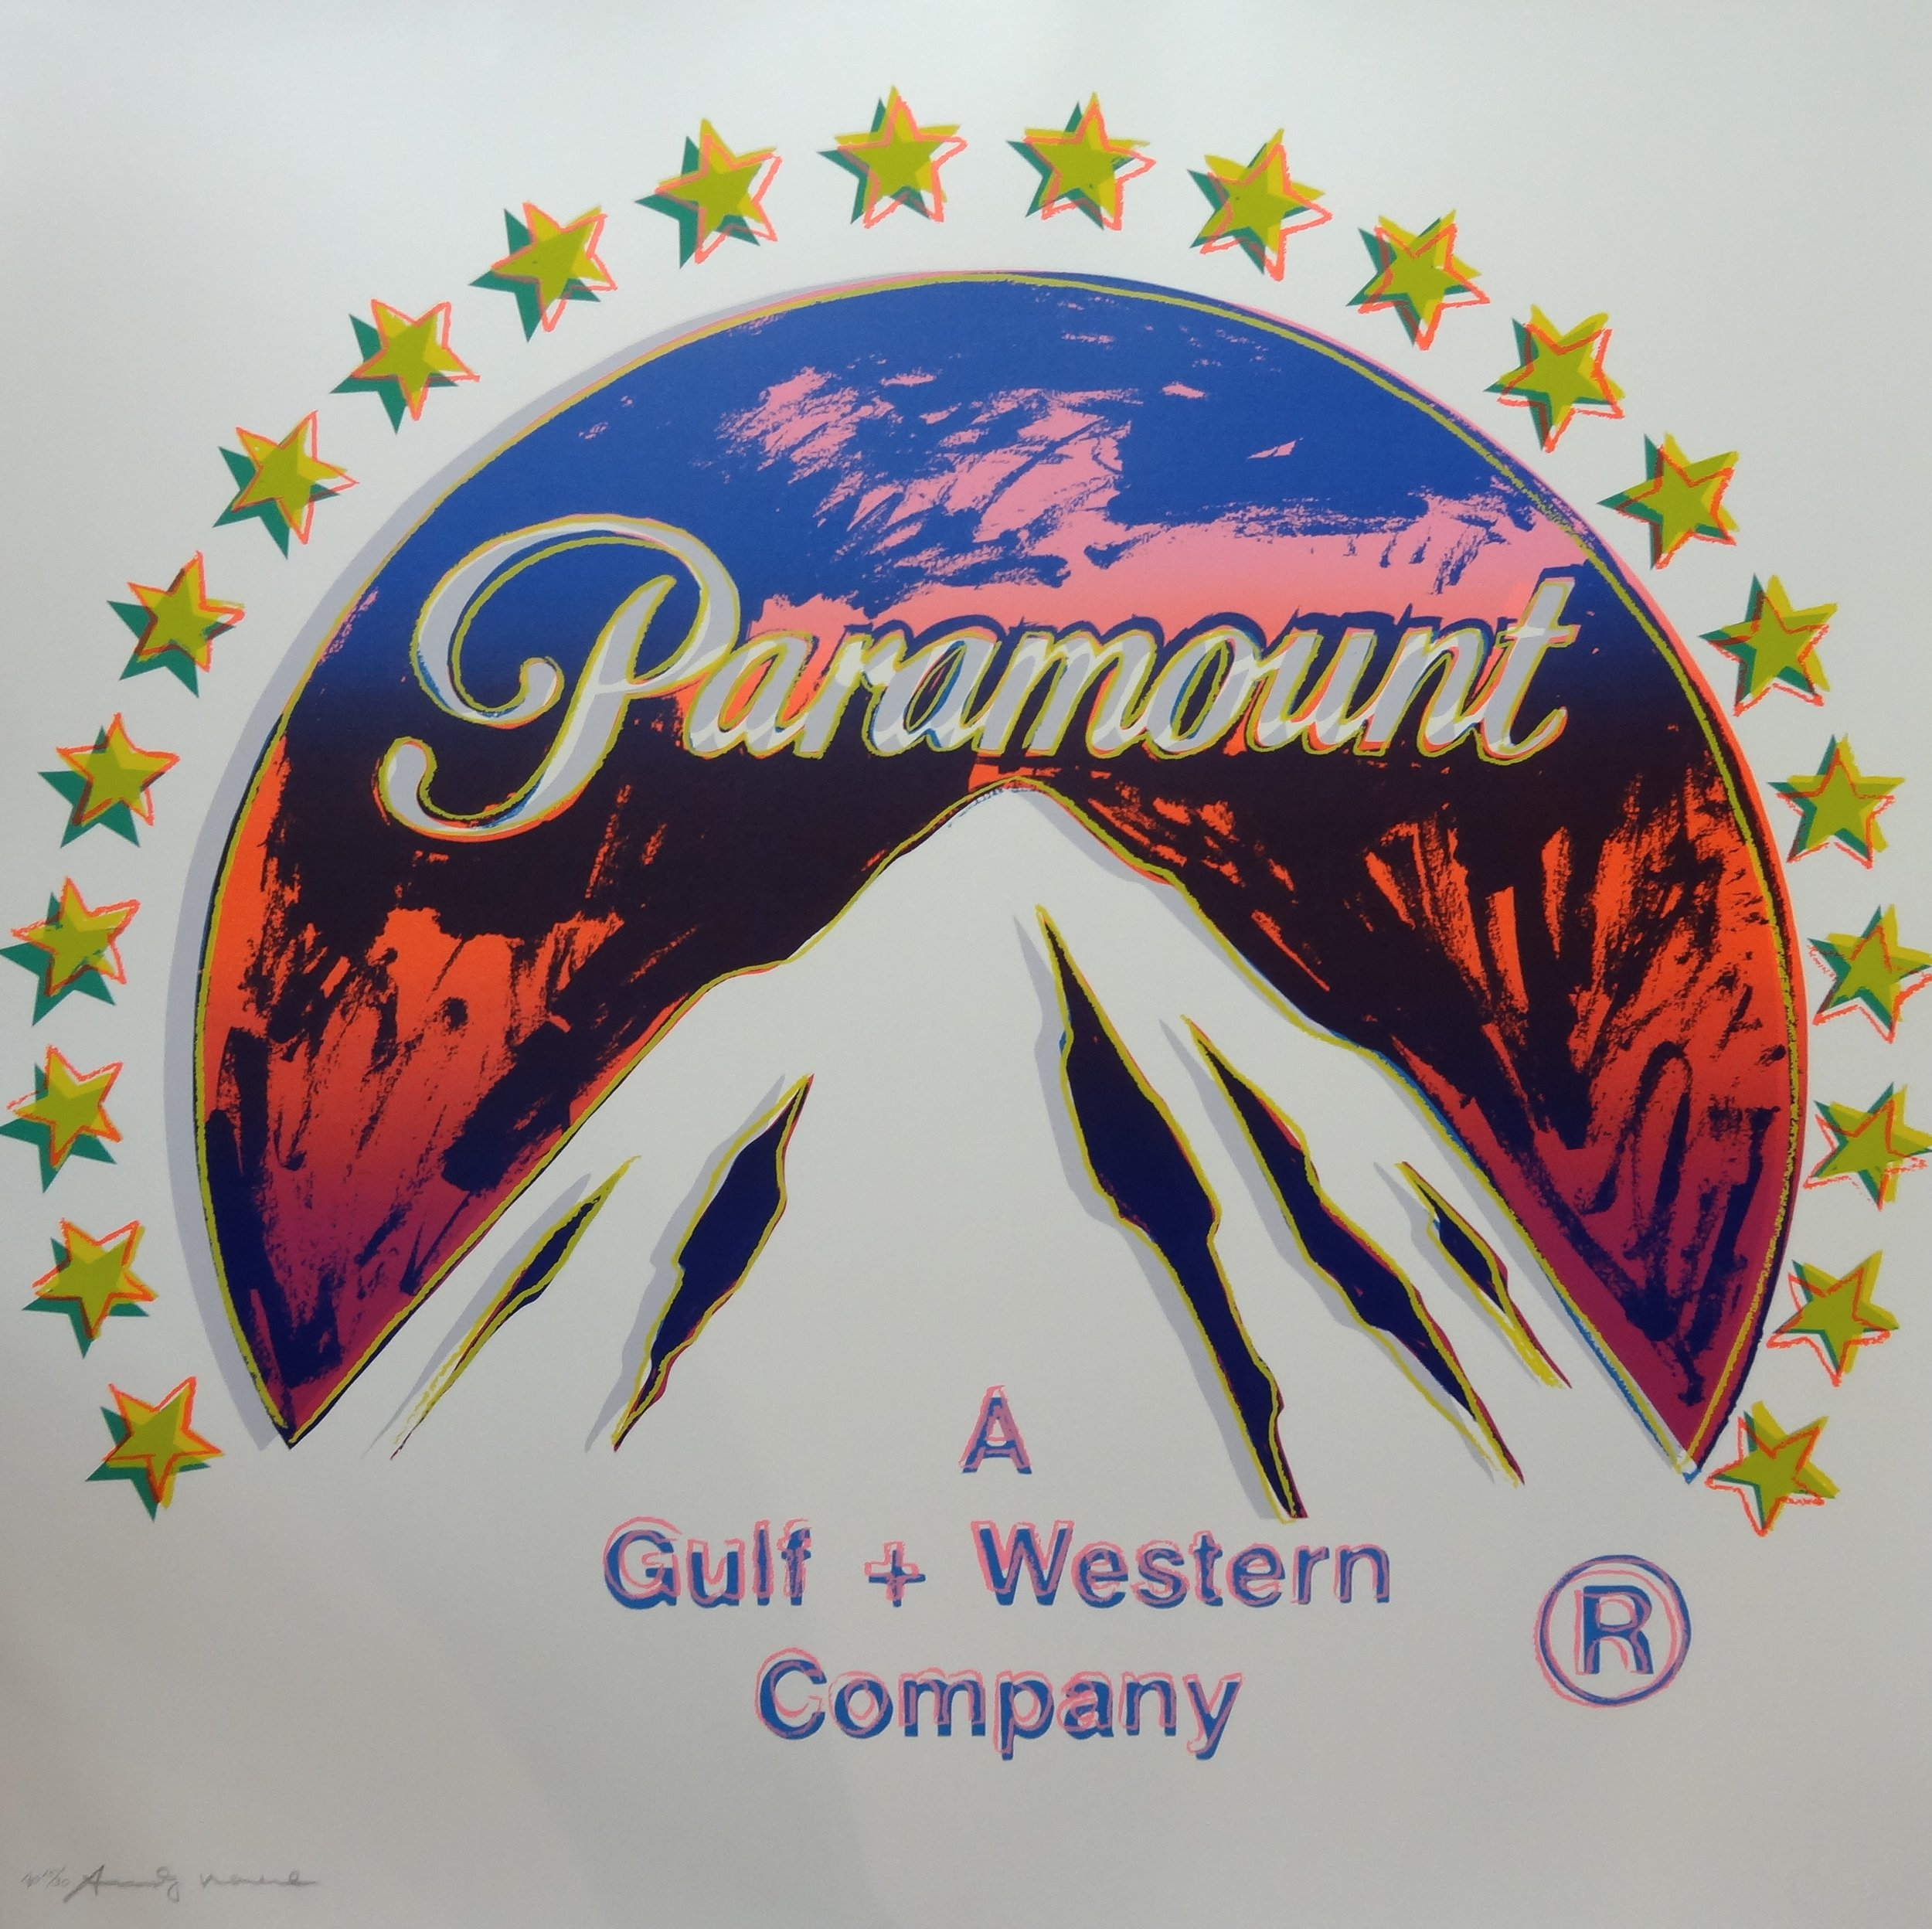 Screenprint on Lenox Museum Board of Paramount logo by Andy Warhol titled,  Paramount (from Ads)